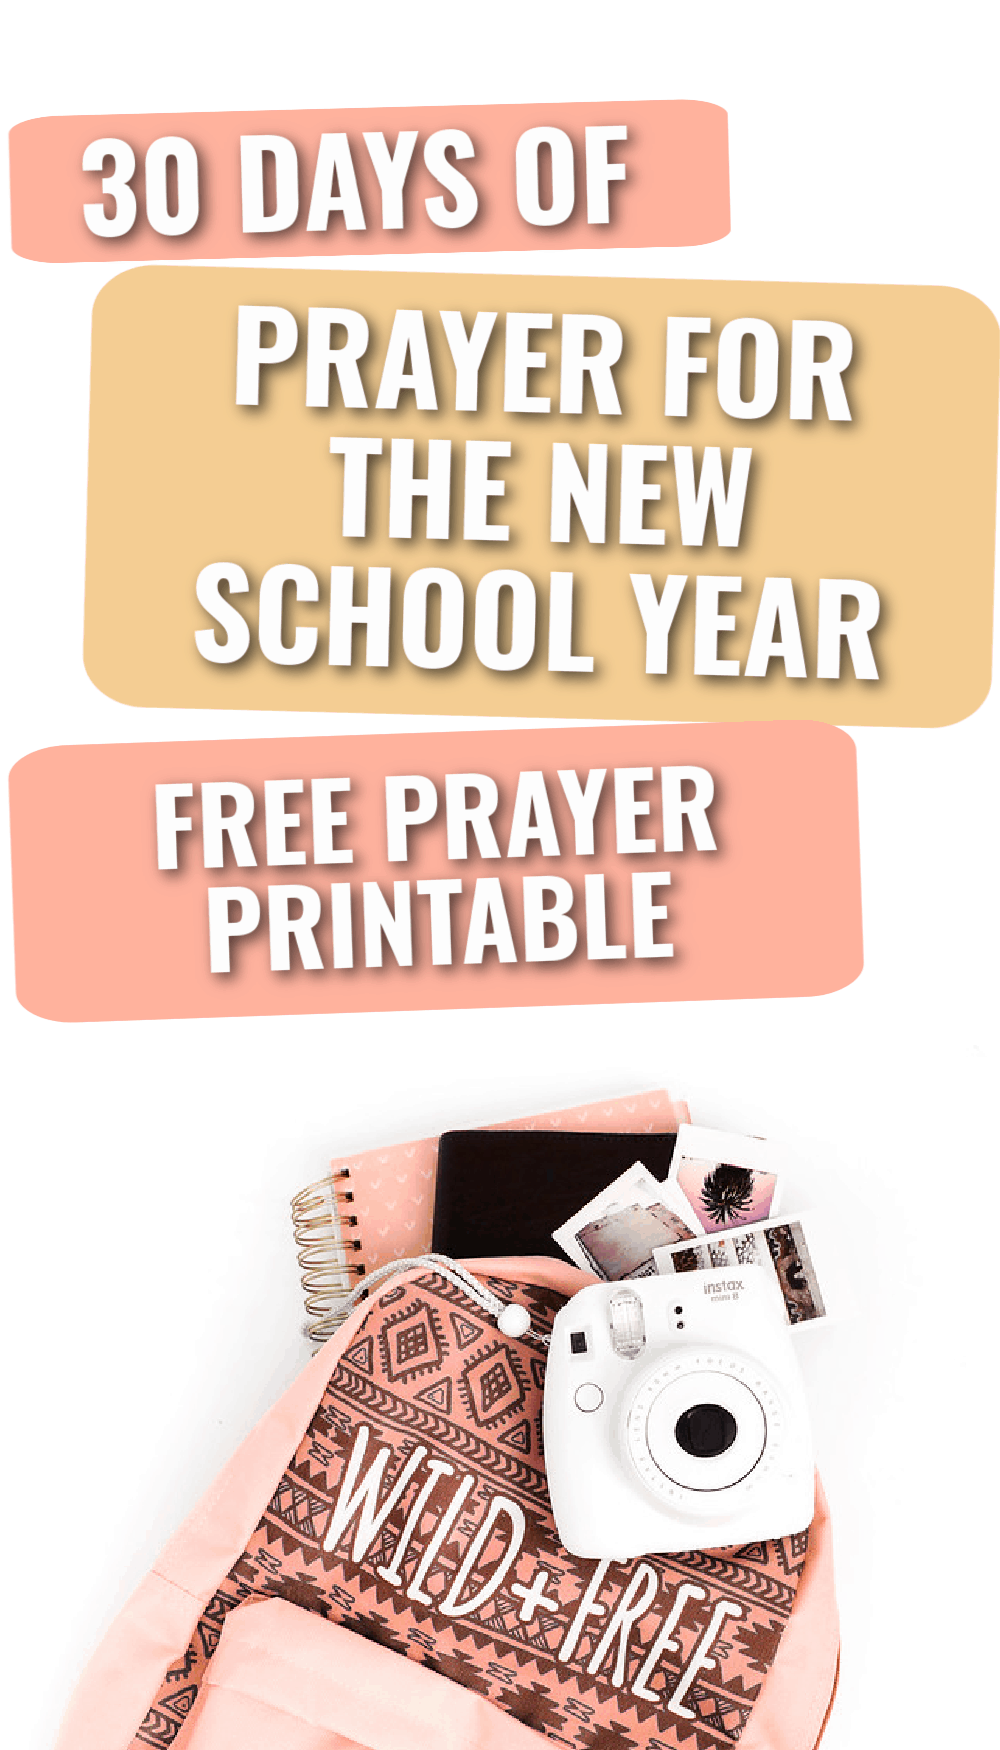 Title- 30 days of prayer for the new school year picture- bookbag with school supplies